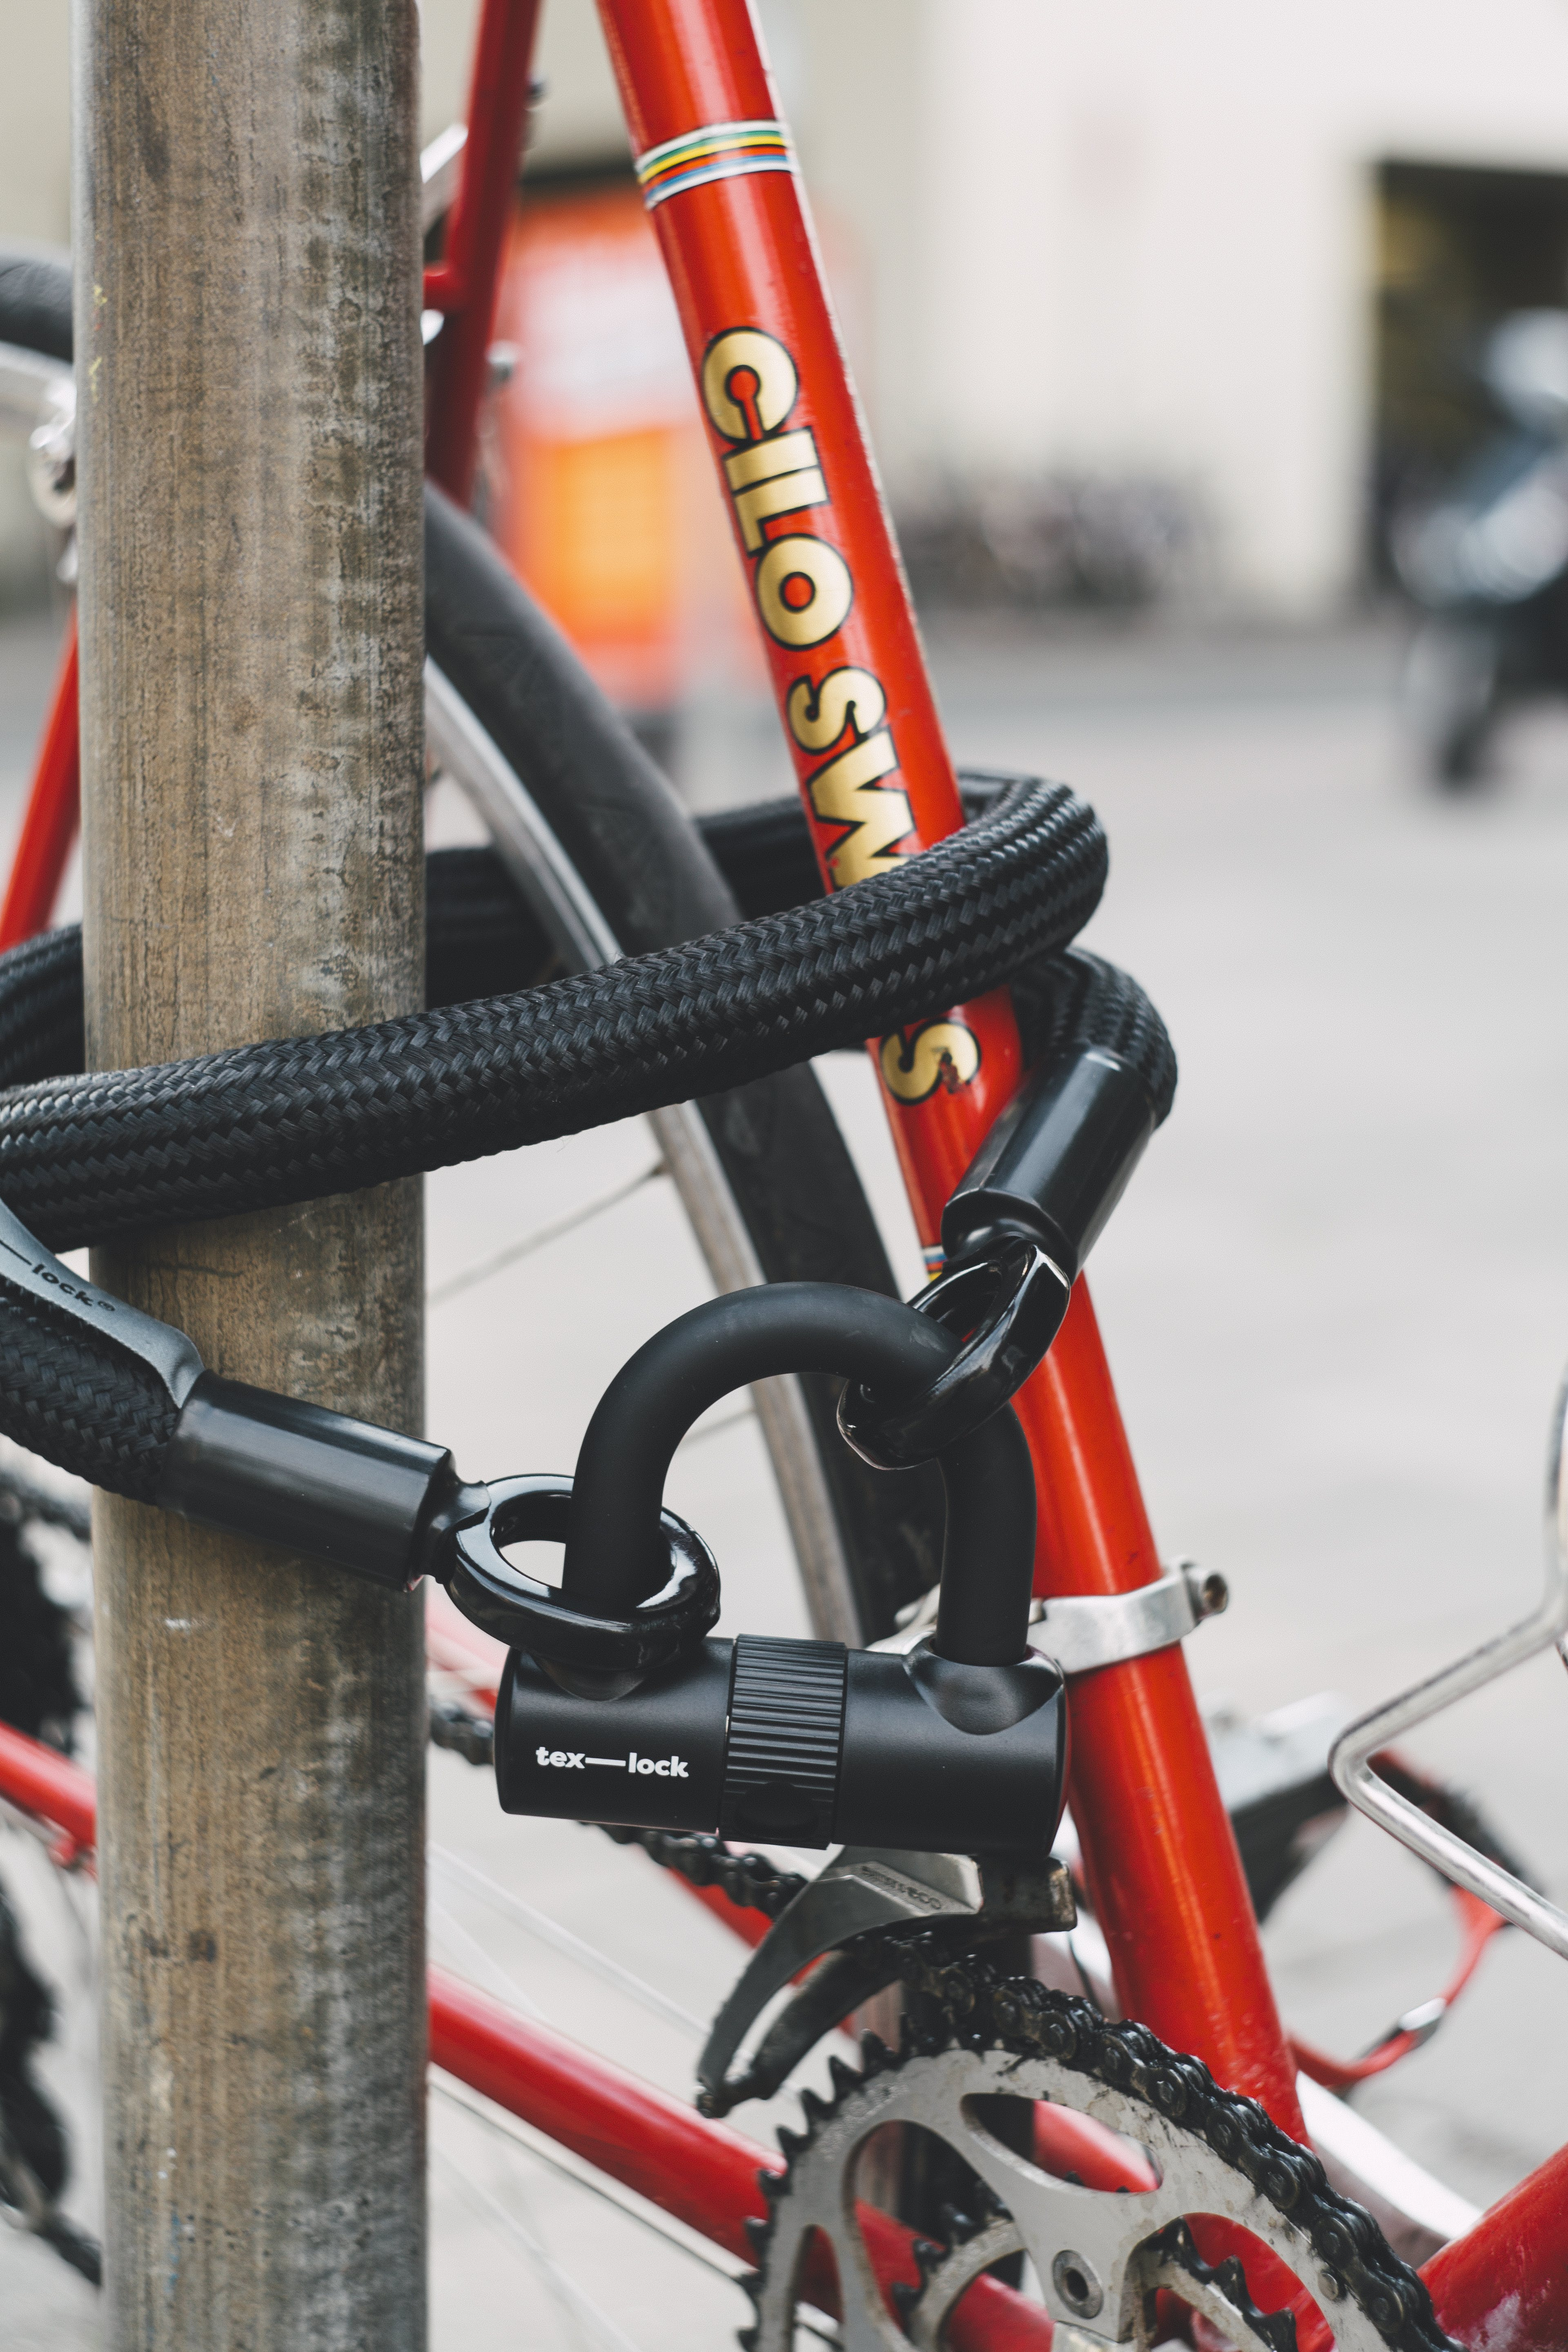 Red Bicycle With Black Lex-lock Cable